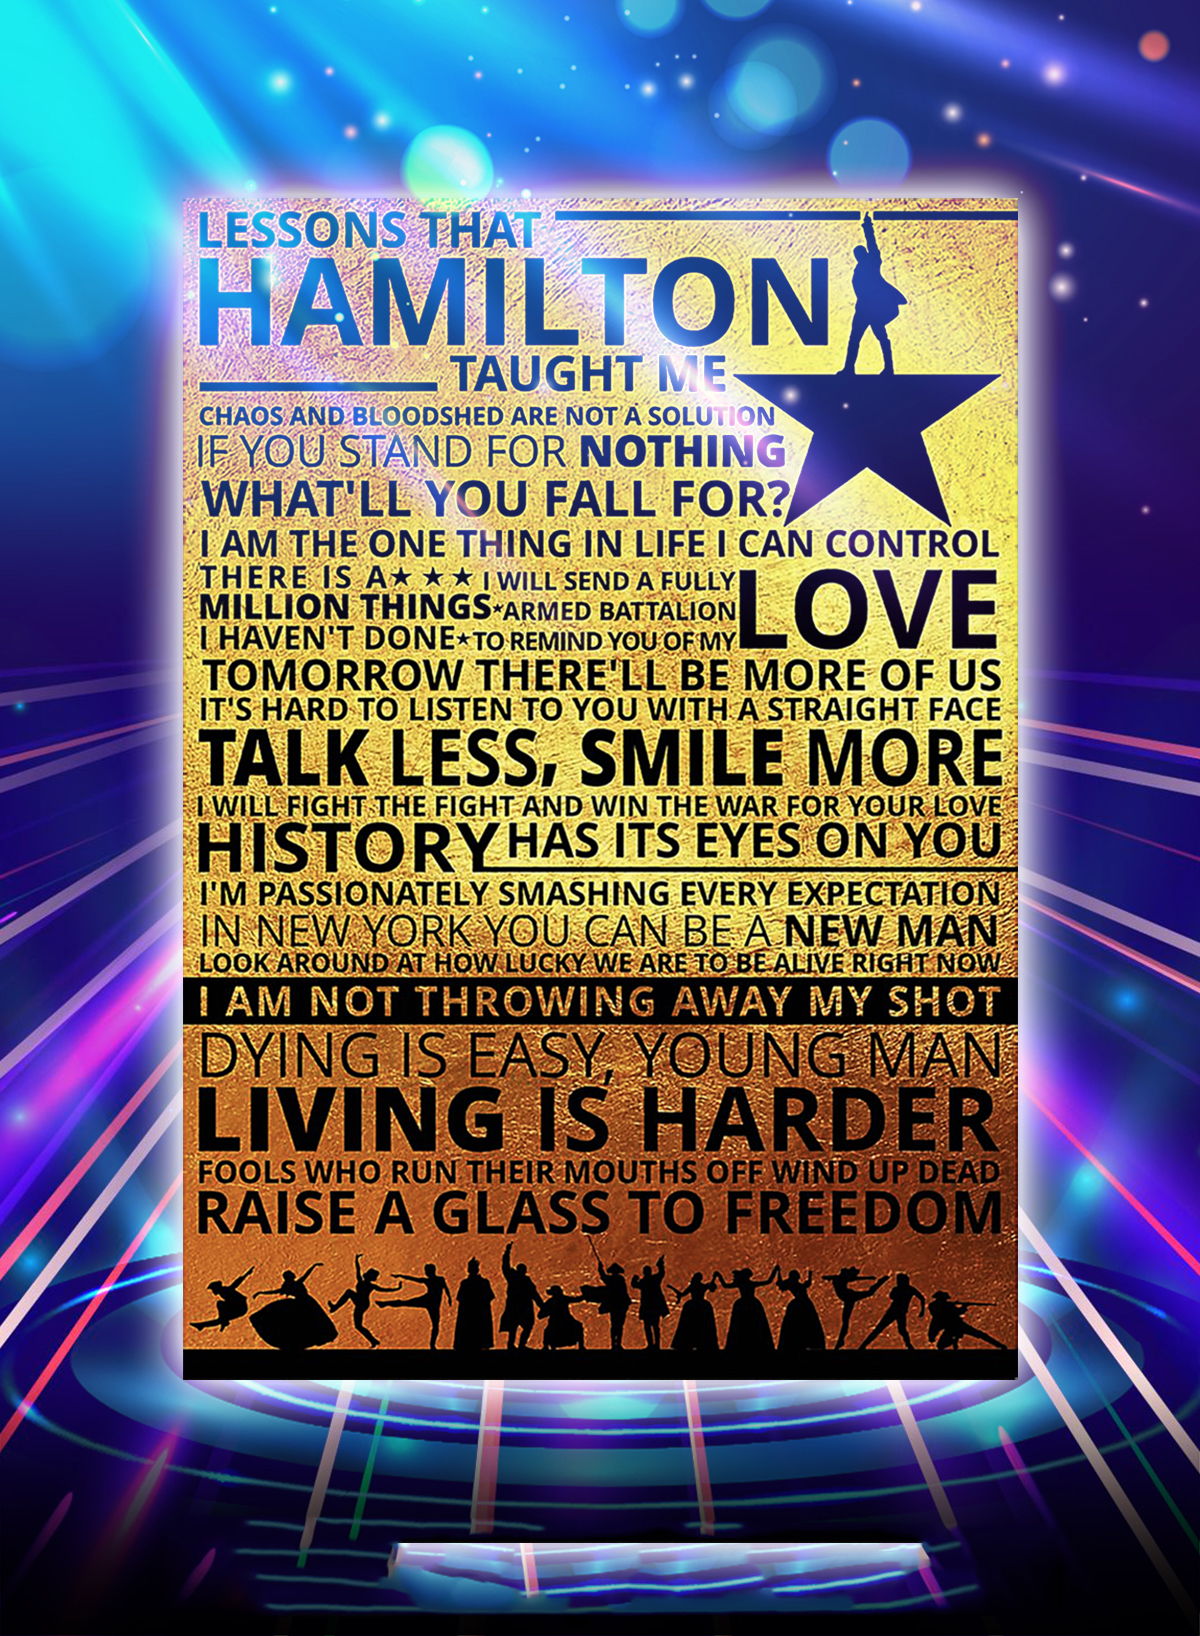 Lessons hamilton taught me poster - A1